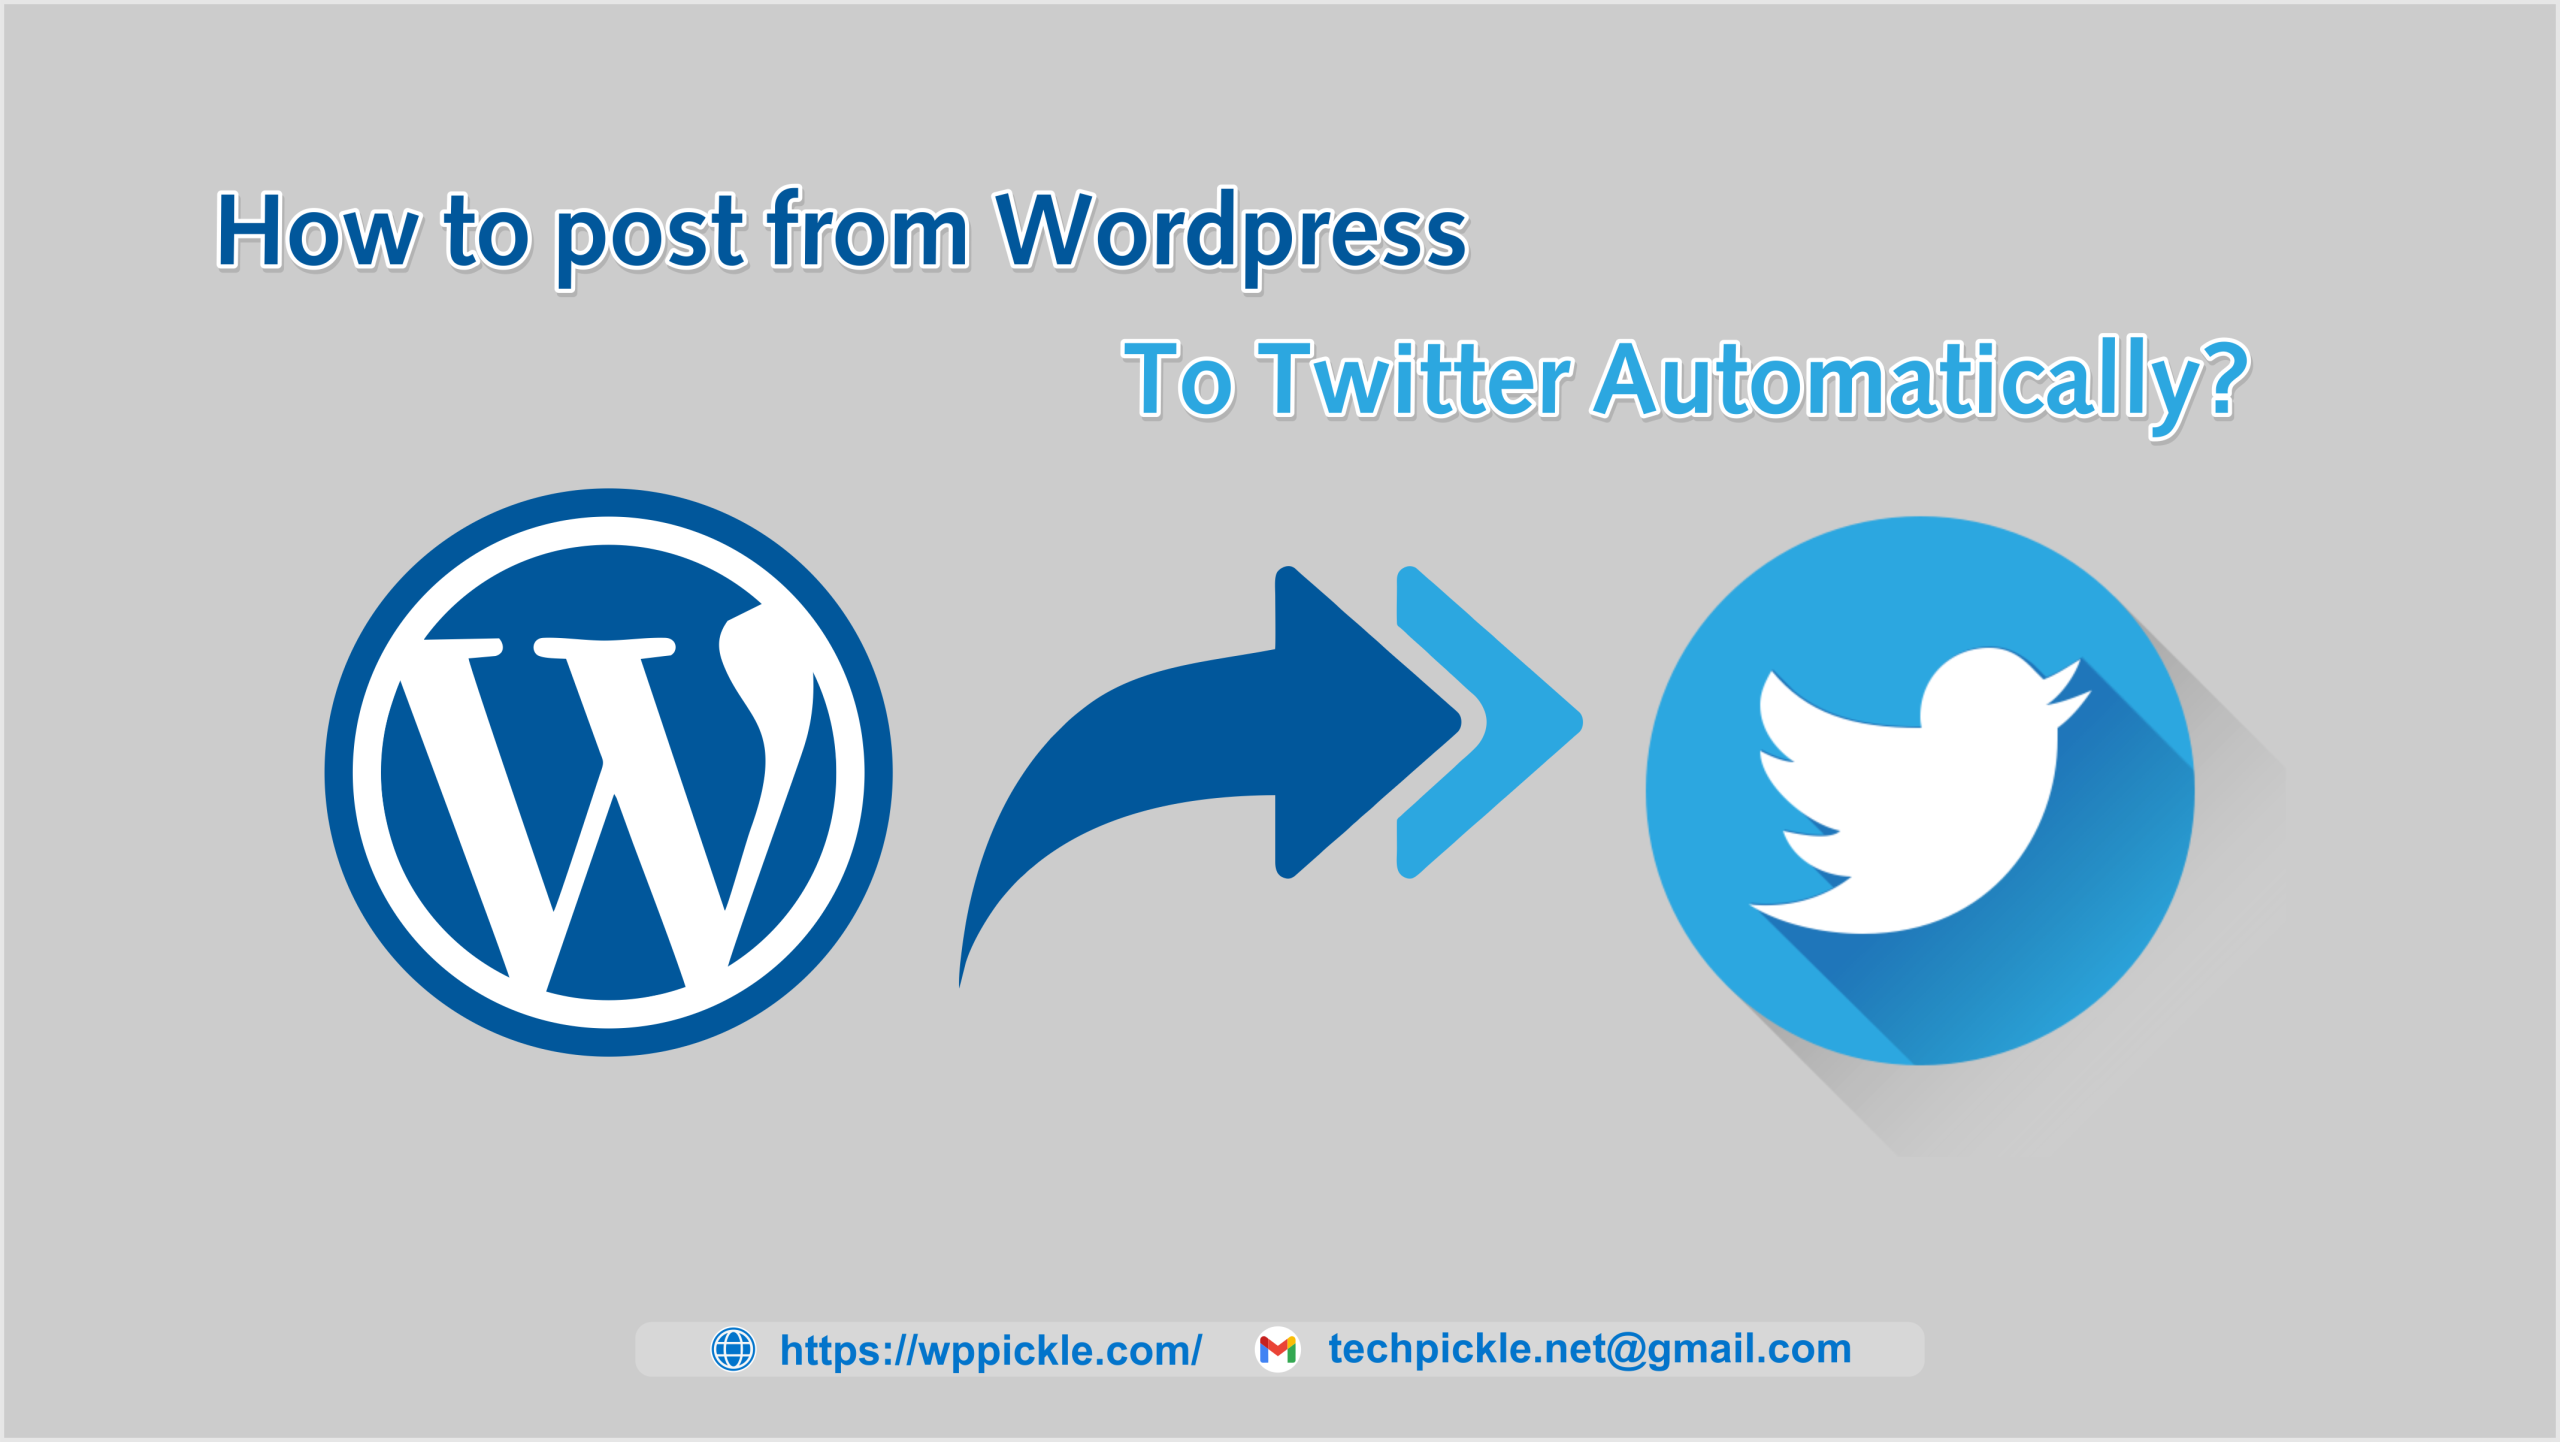 How to Share WordPress Blog Posts Automatically to Twitter